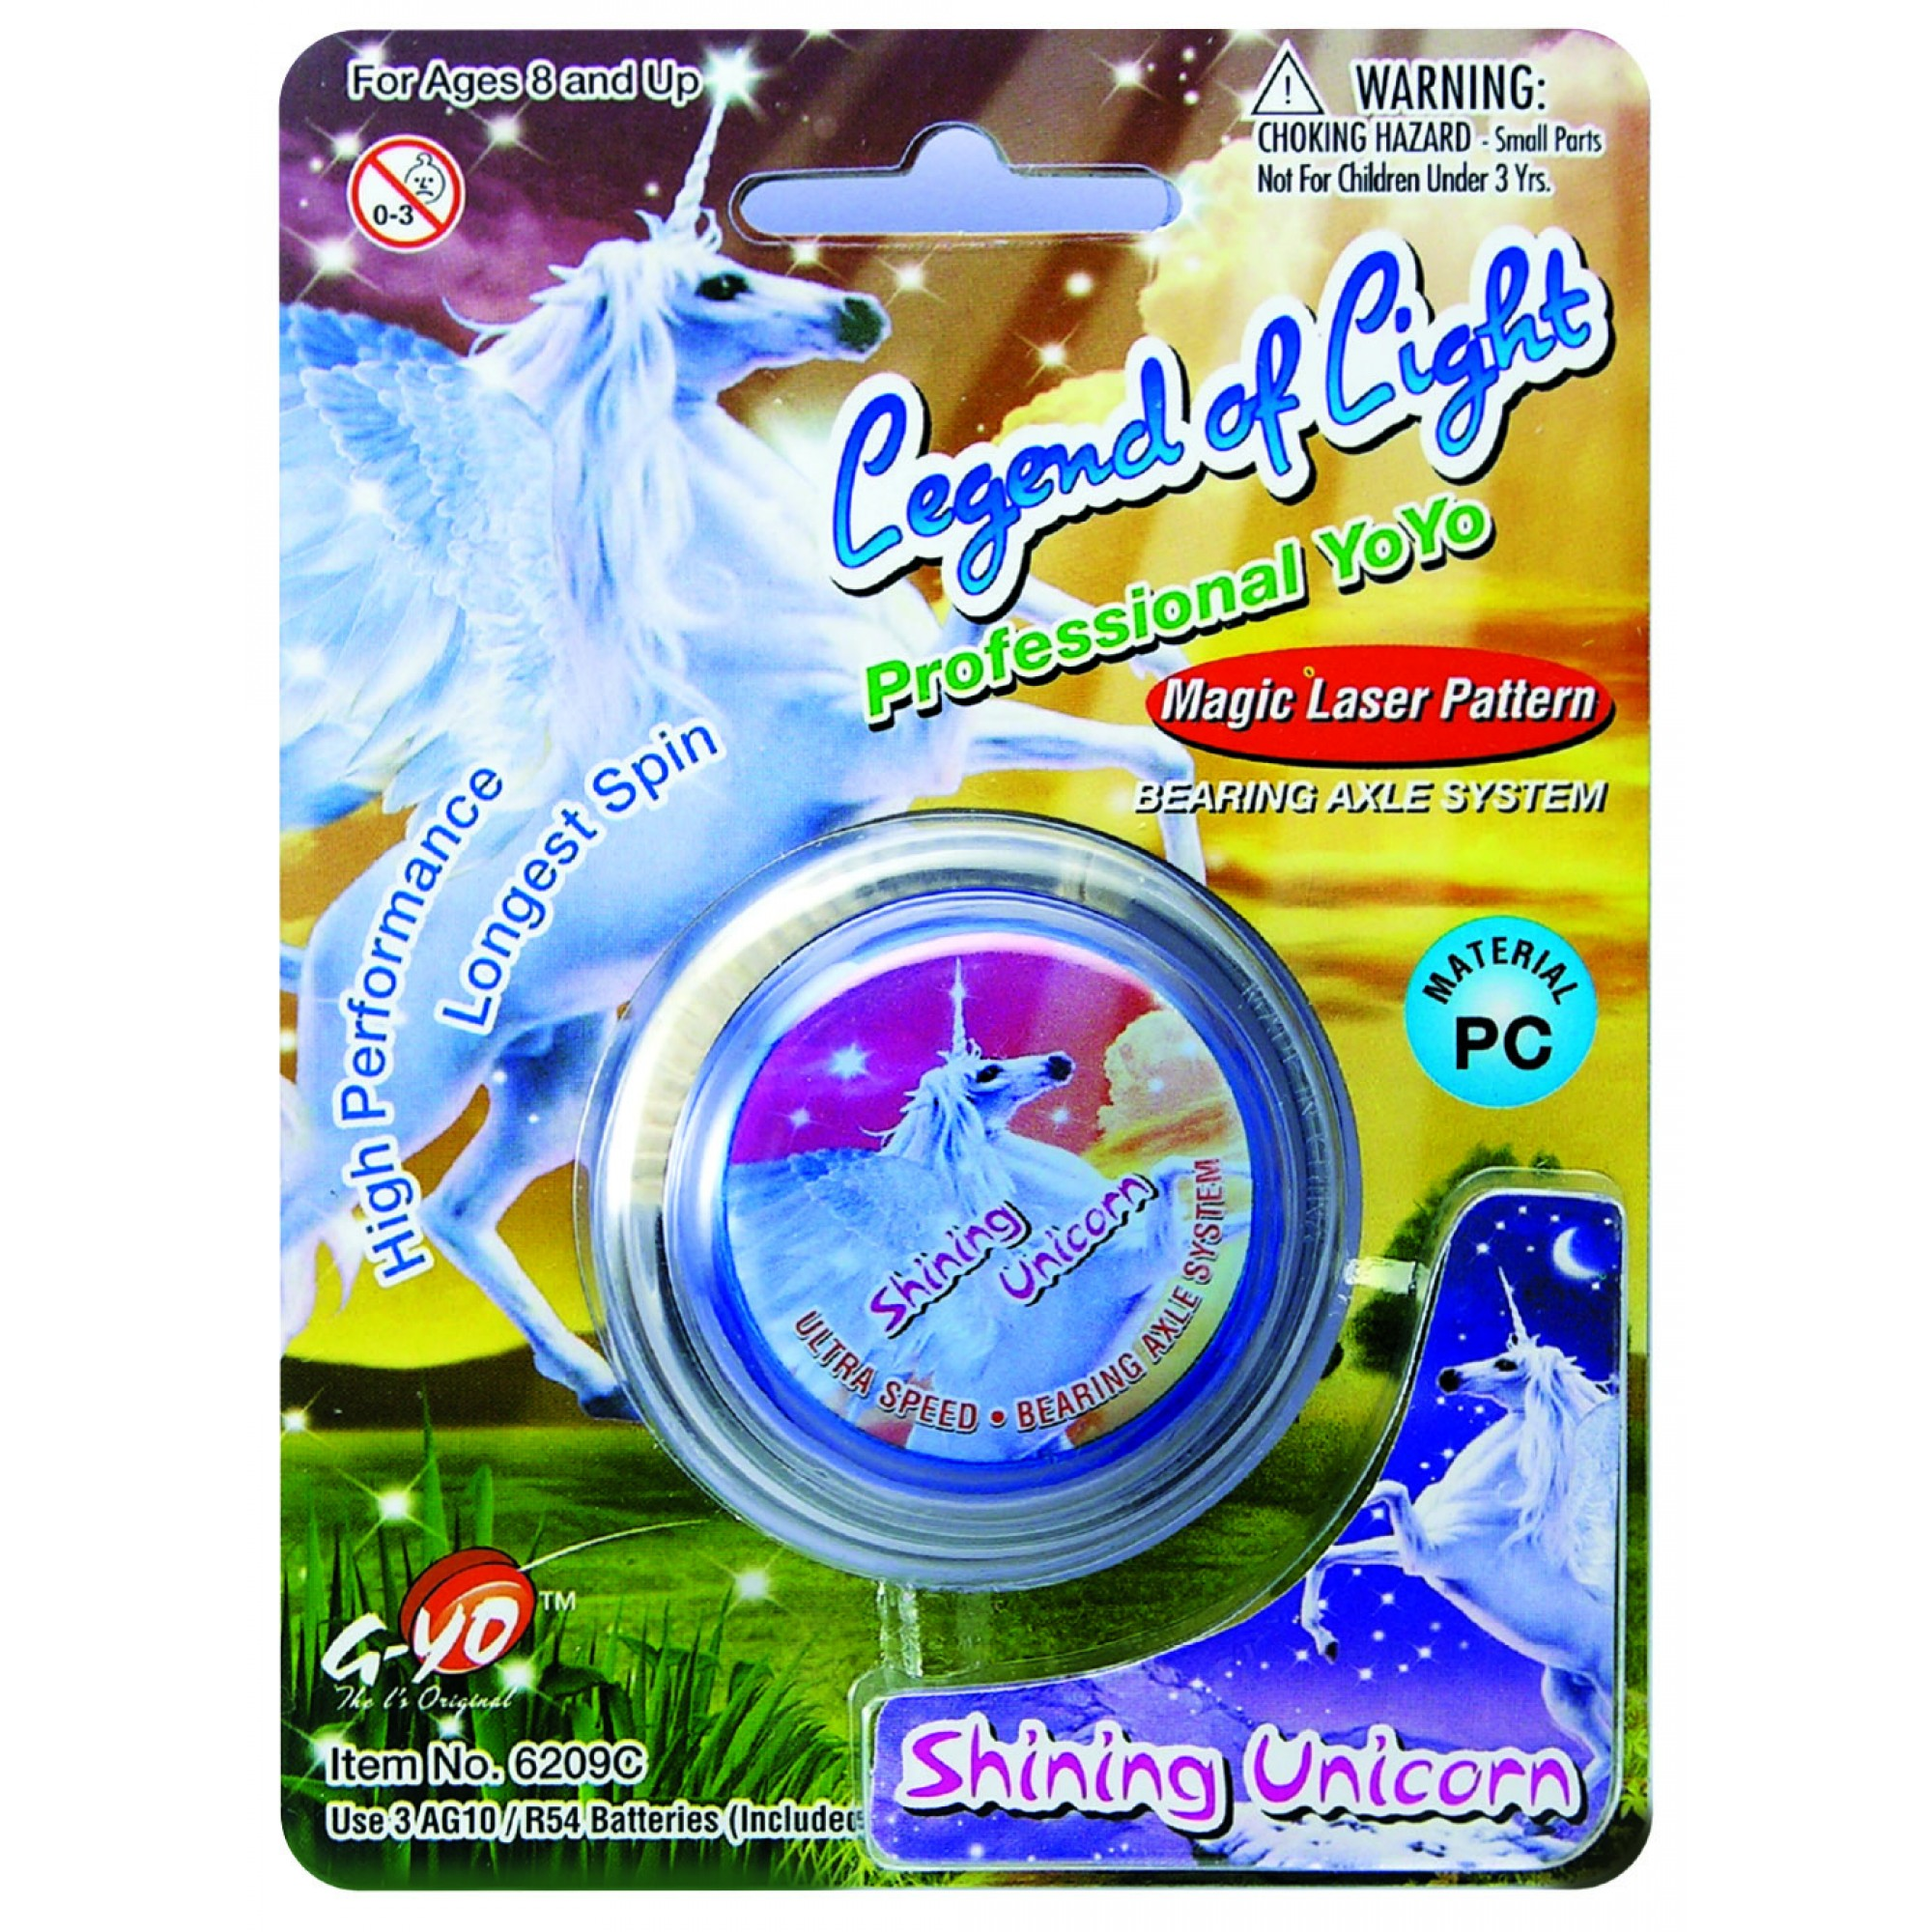 Legend Of Light - Laser Yoyo (Shining Unicorn)